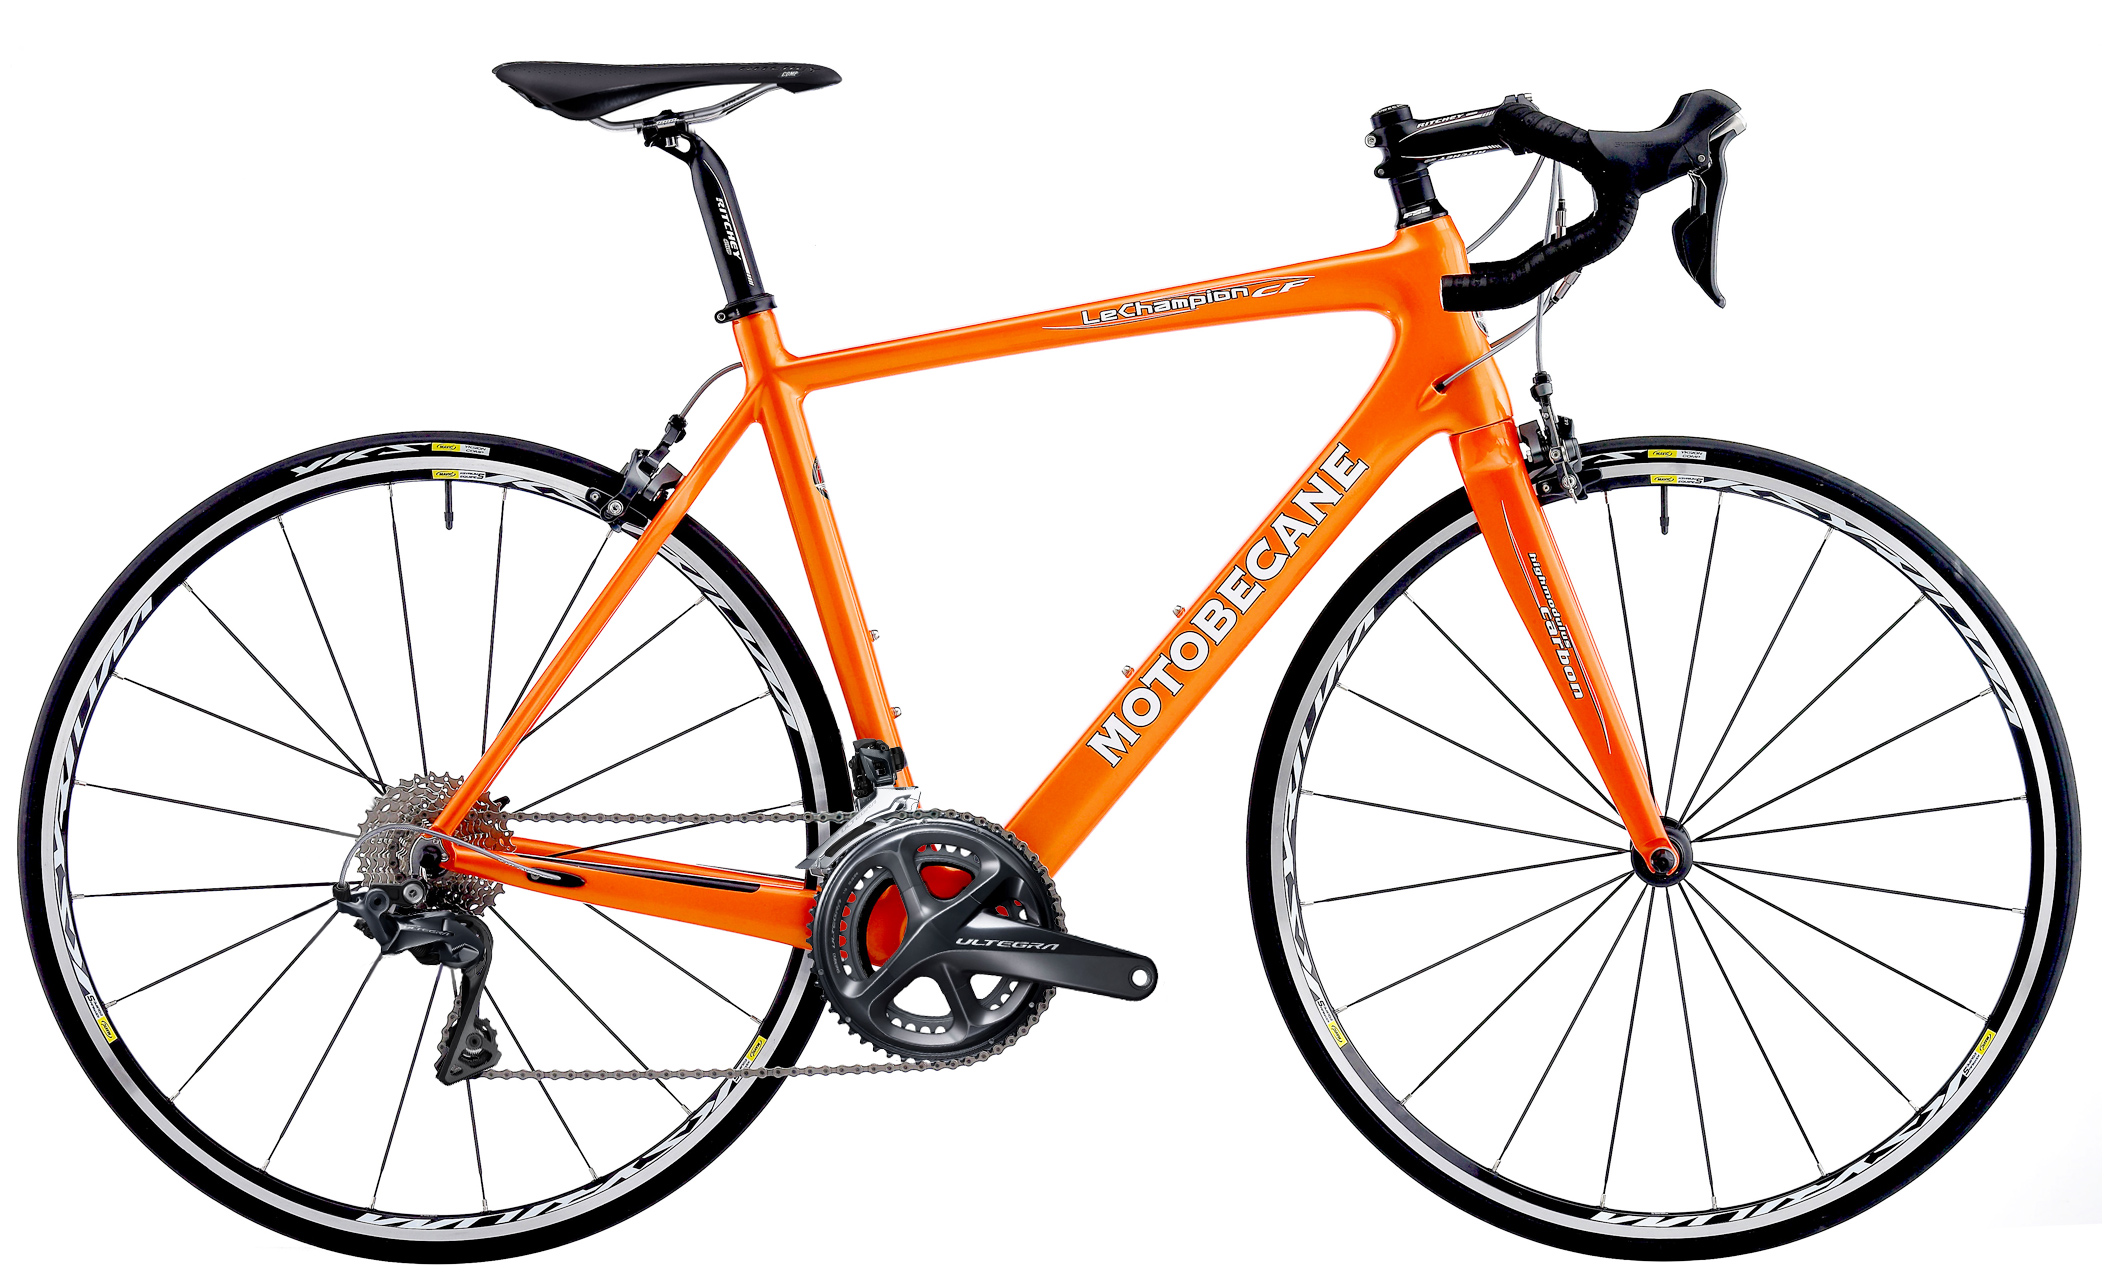 Bikes 2018 Motobecane Le Champion CF Pro Aero Carbon 22 Speed R8000 Ultegra Equipped Image